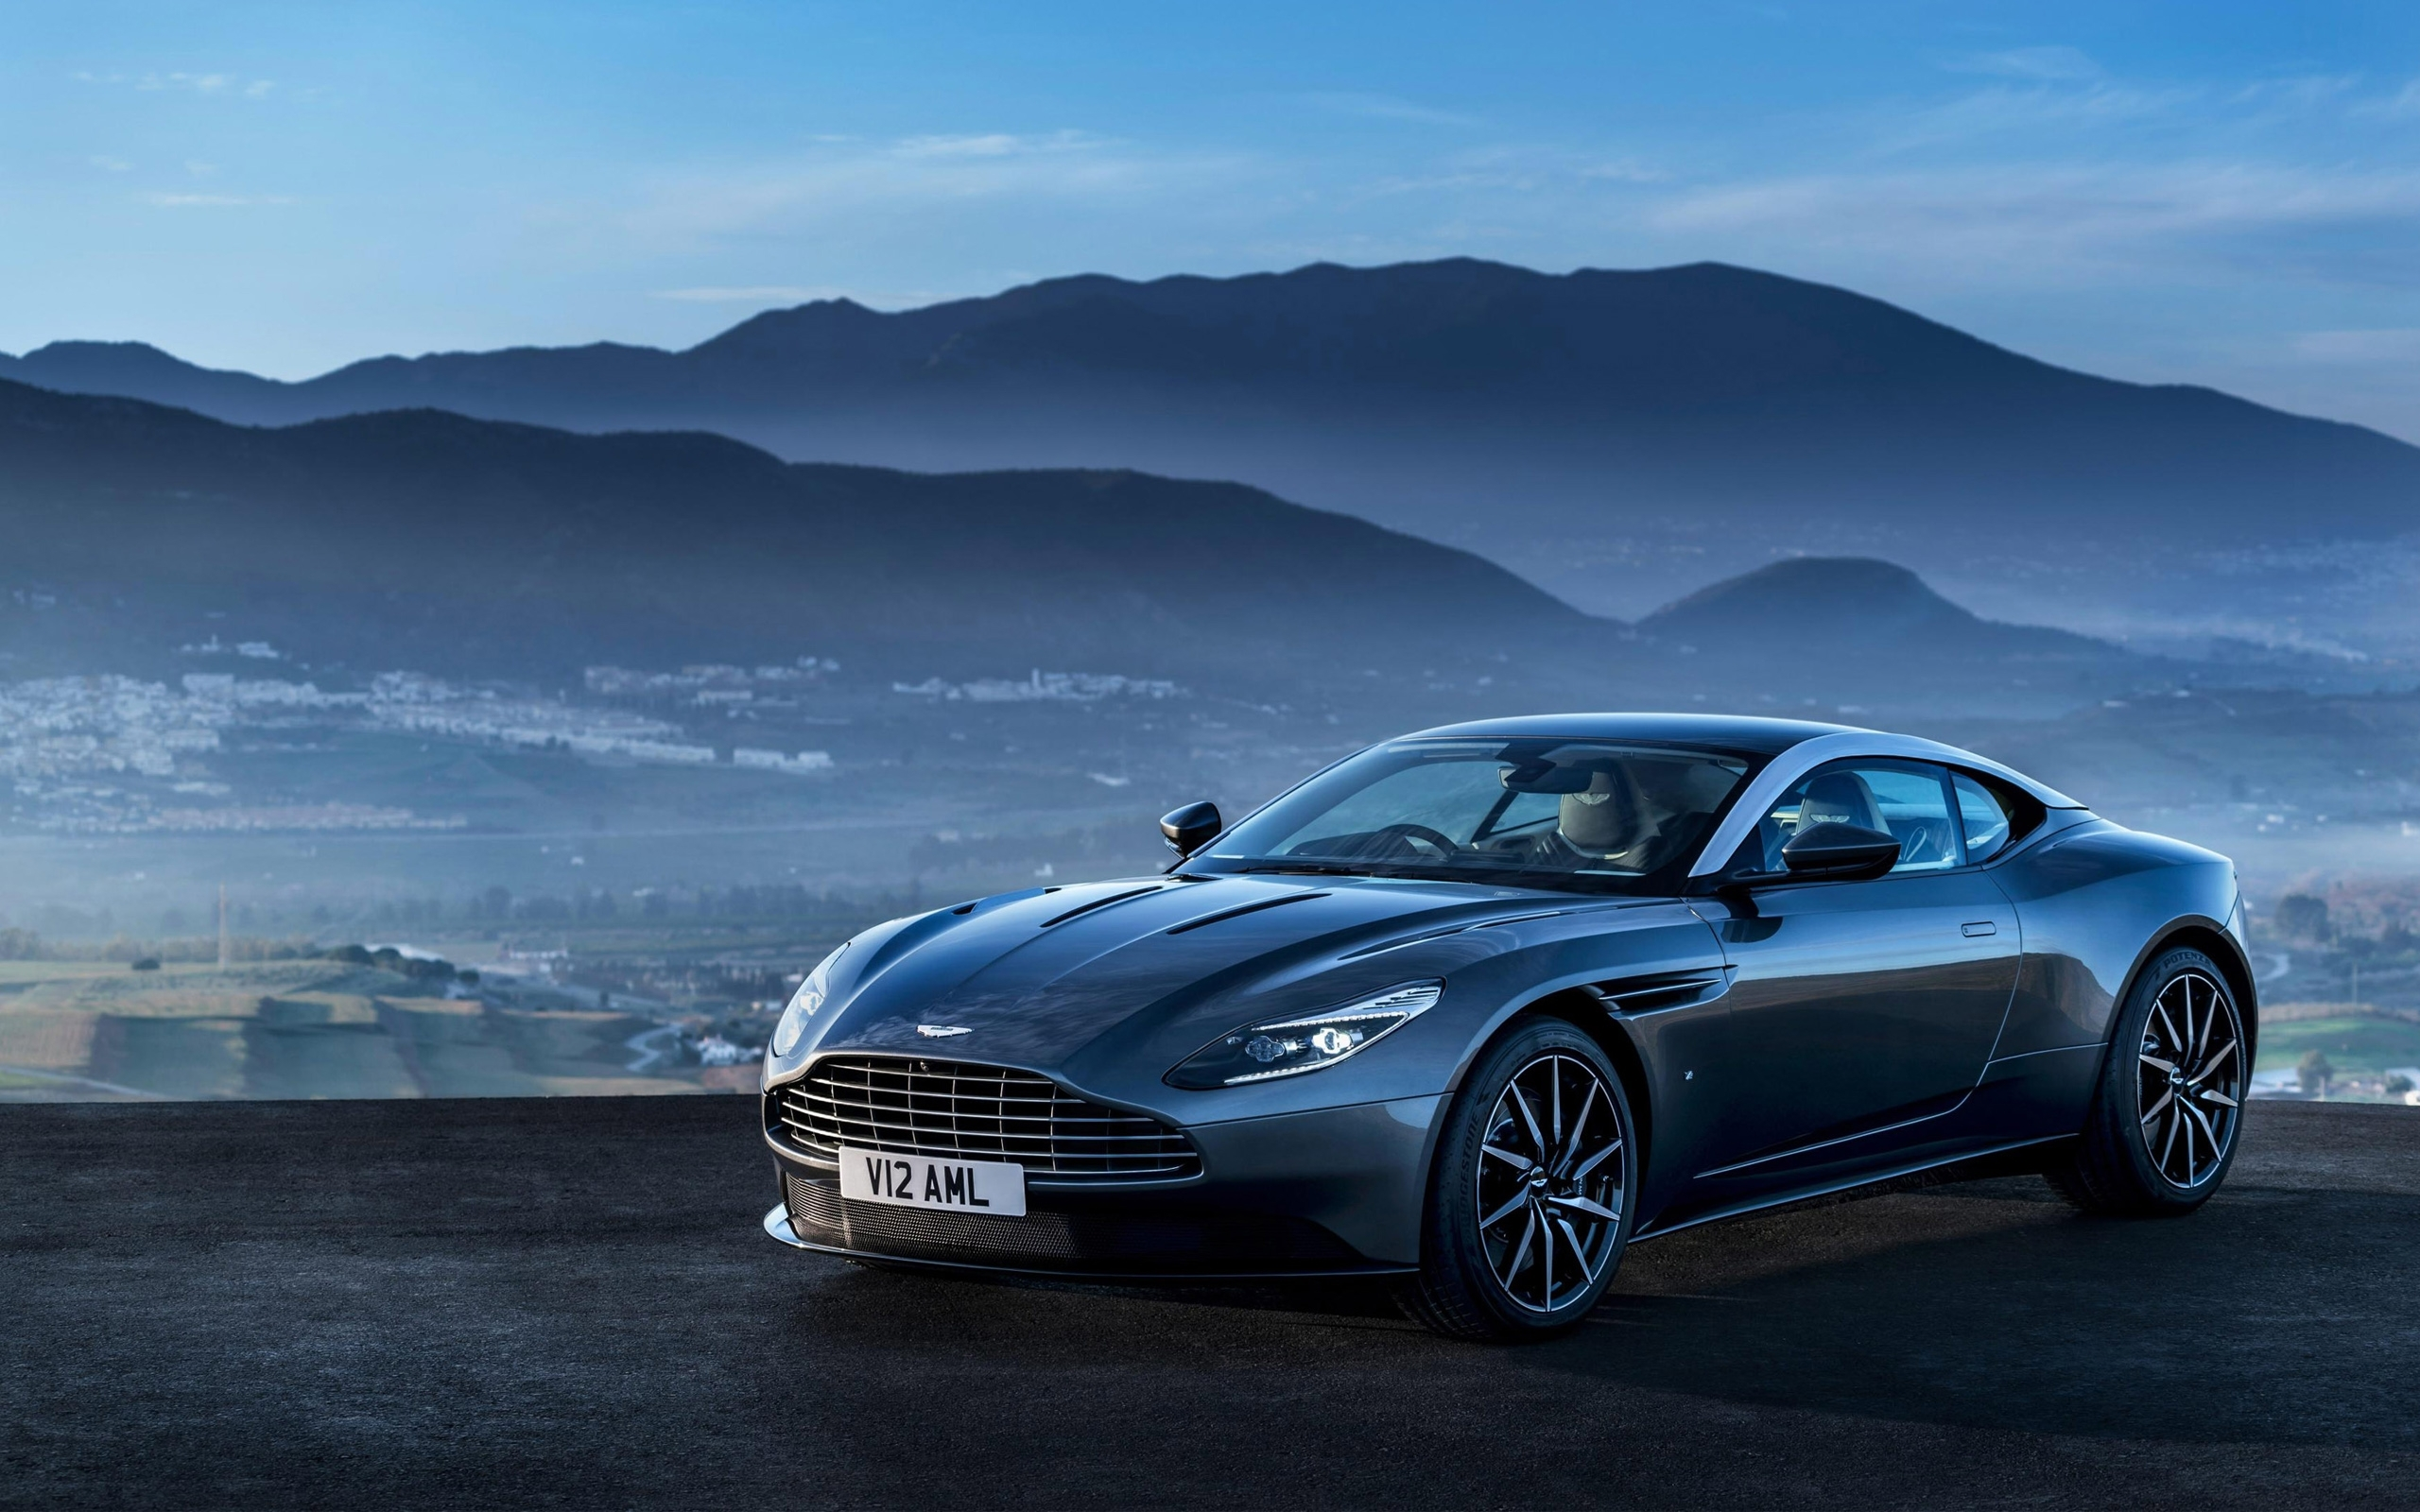 2017 aston martin db11 wallpaper | hd car wallpapers